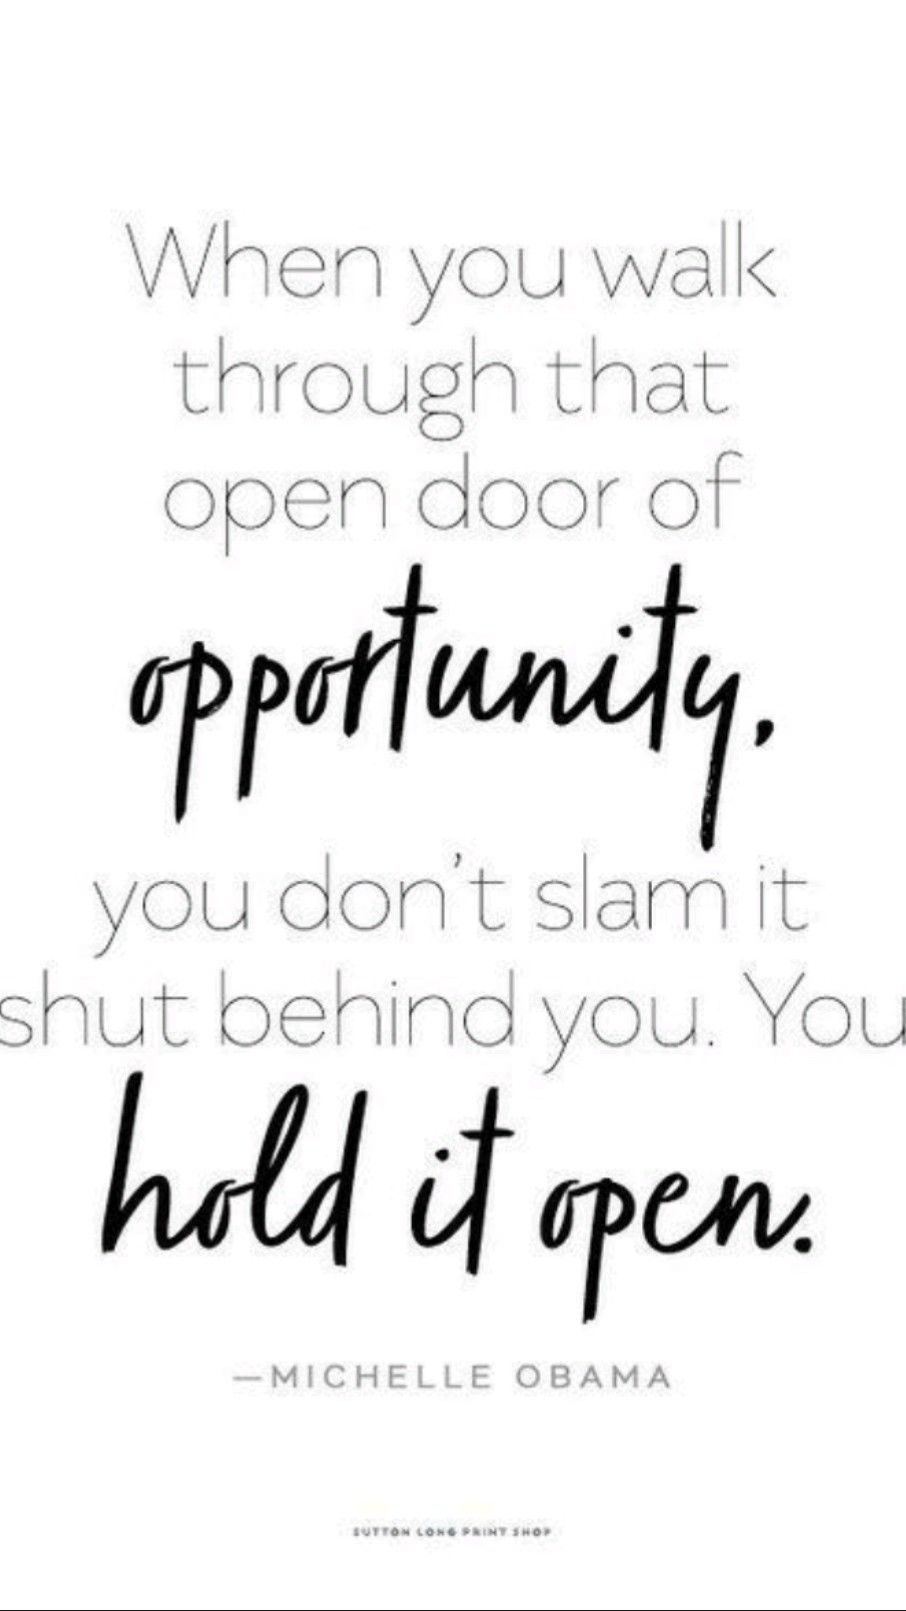 get te opportunities  today to begin your business.